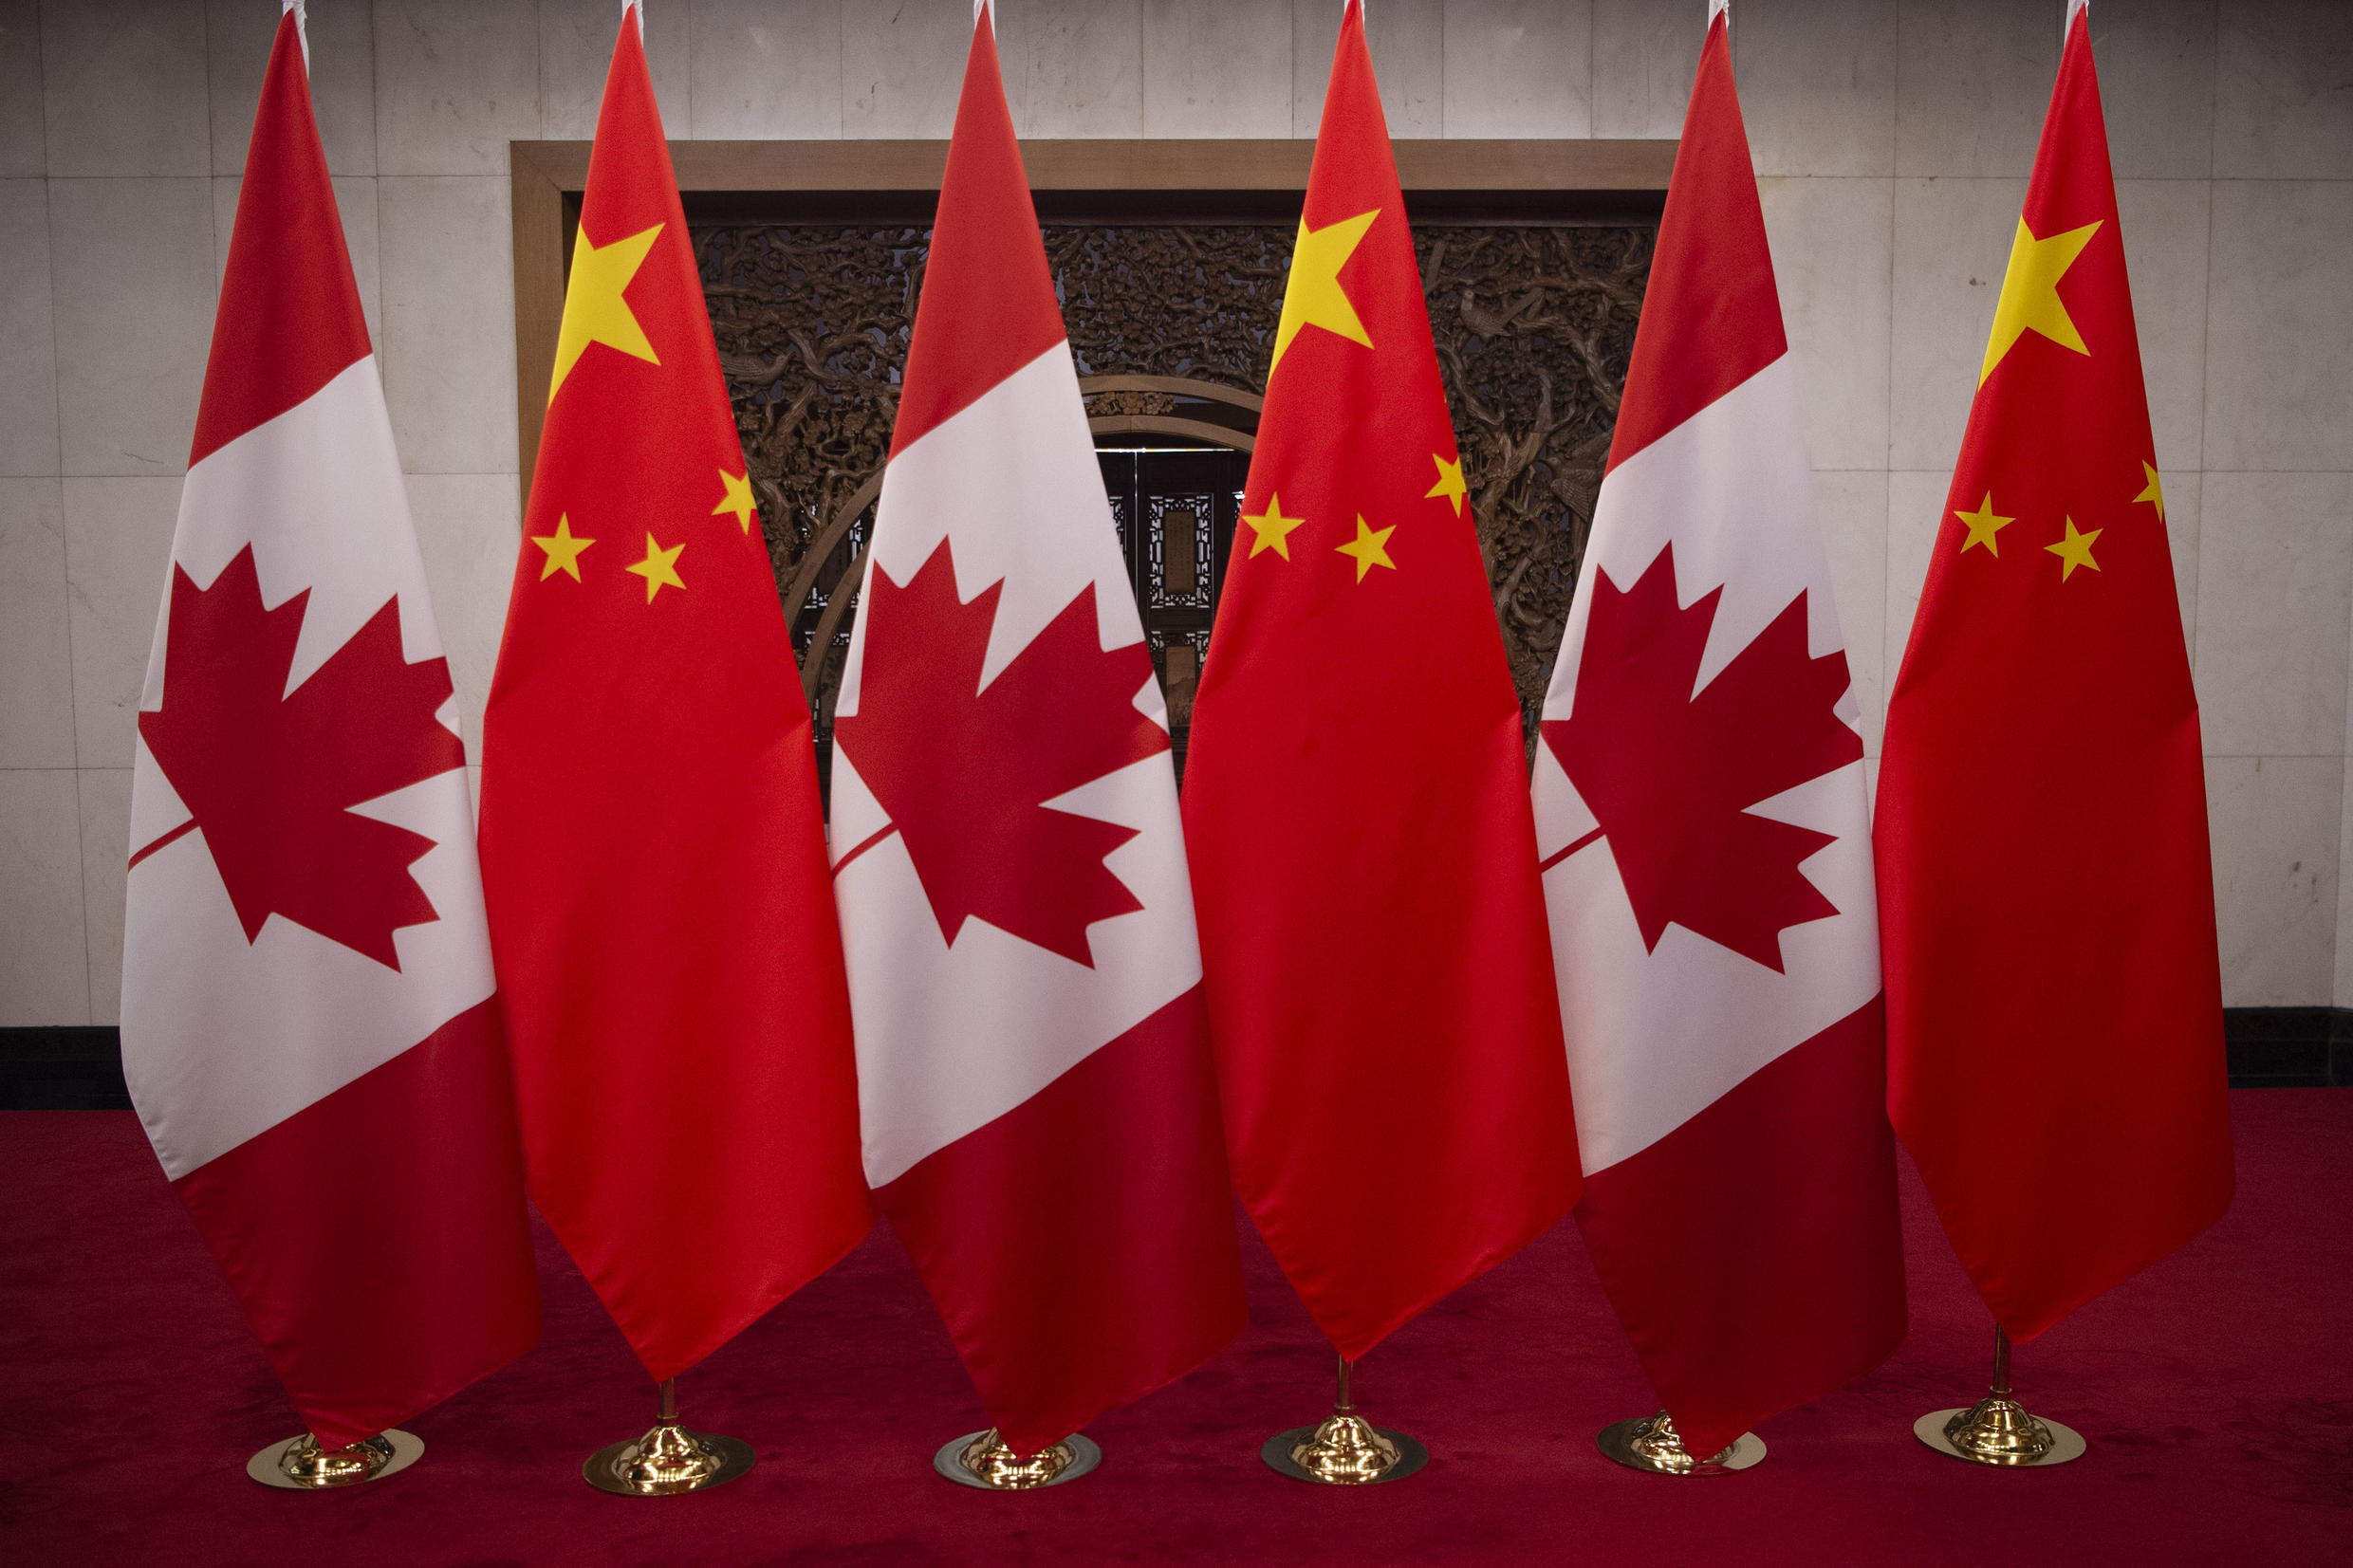 Relations between Beijing and Ottawa have spiralled since China detained former diplomat Michael Kovrig and businessman Michael Spavor in 2018